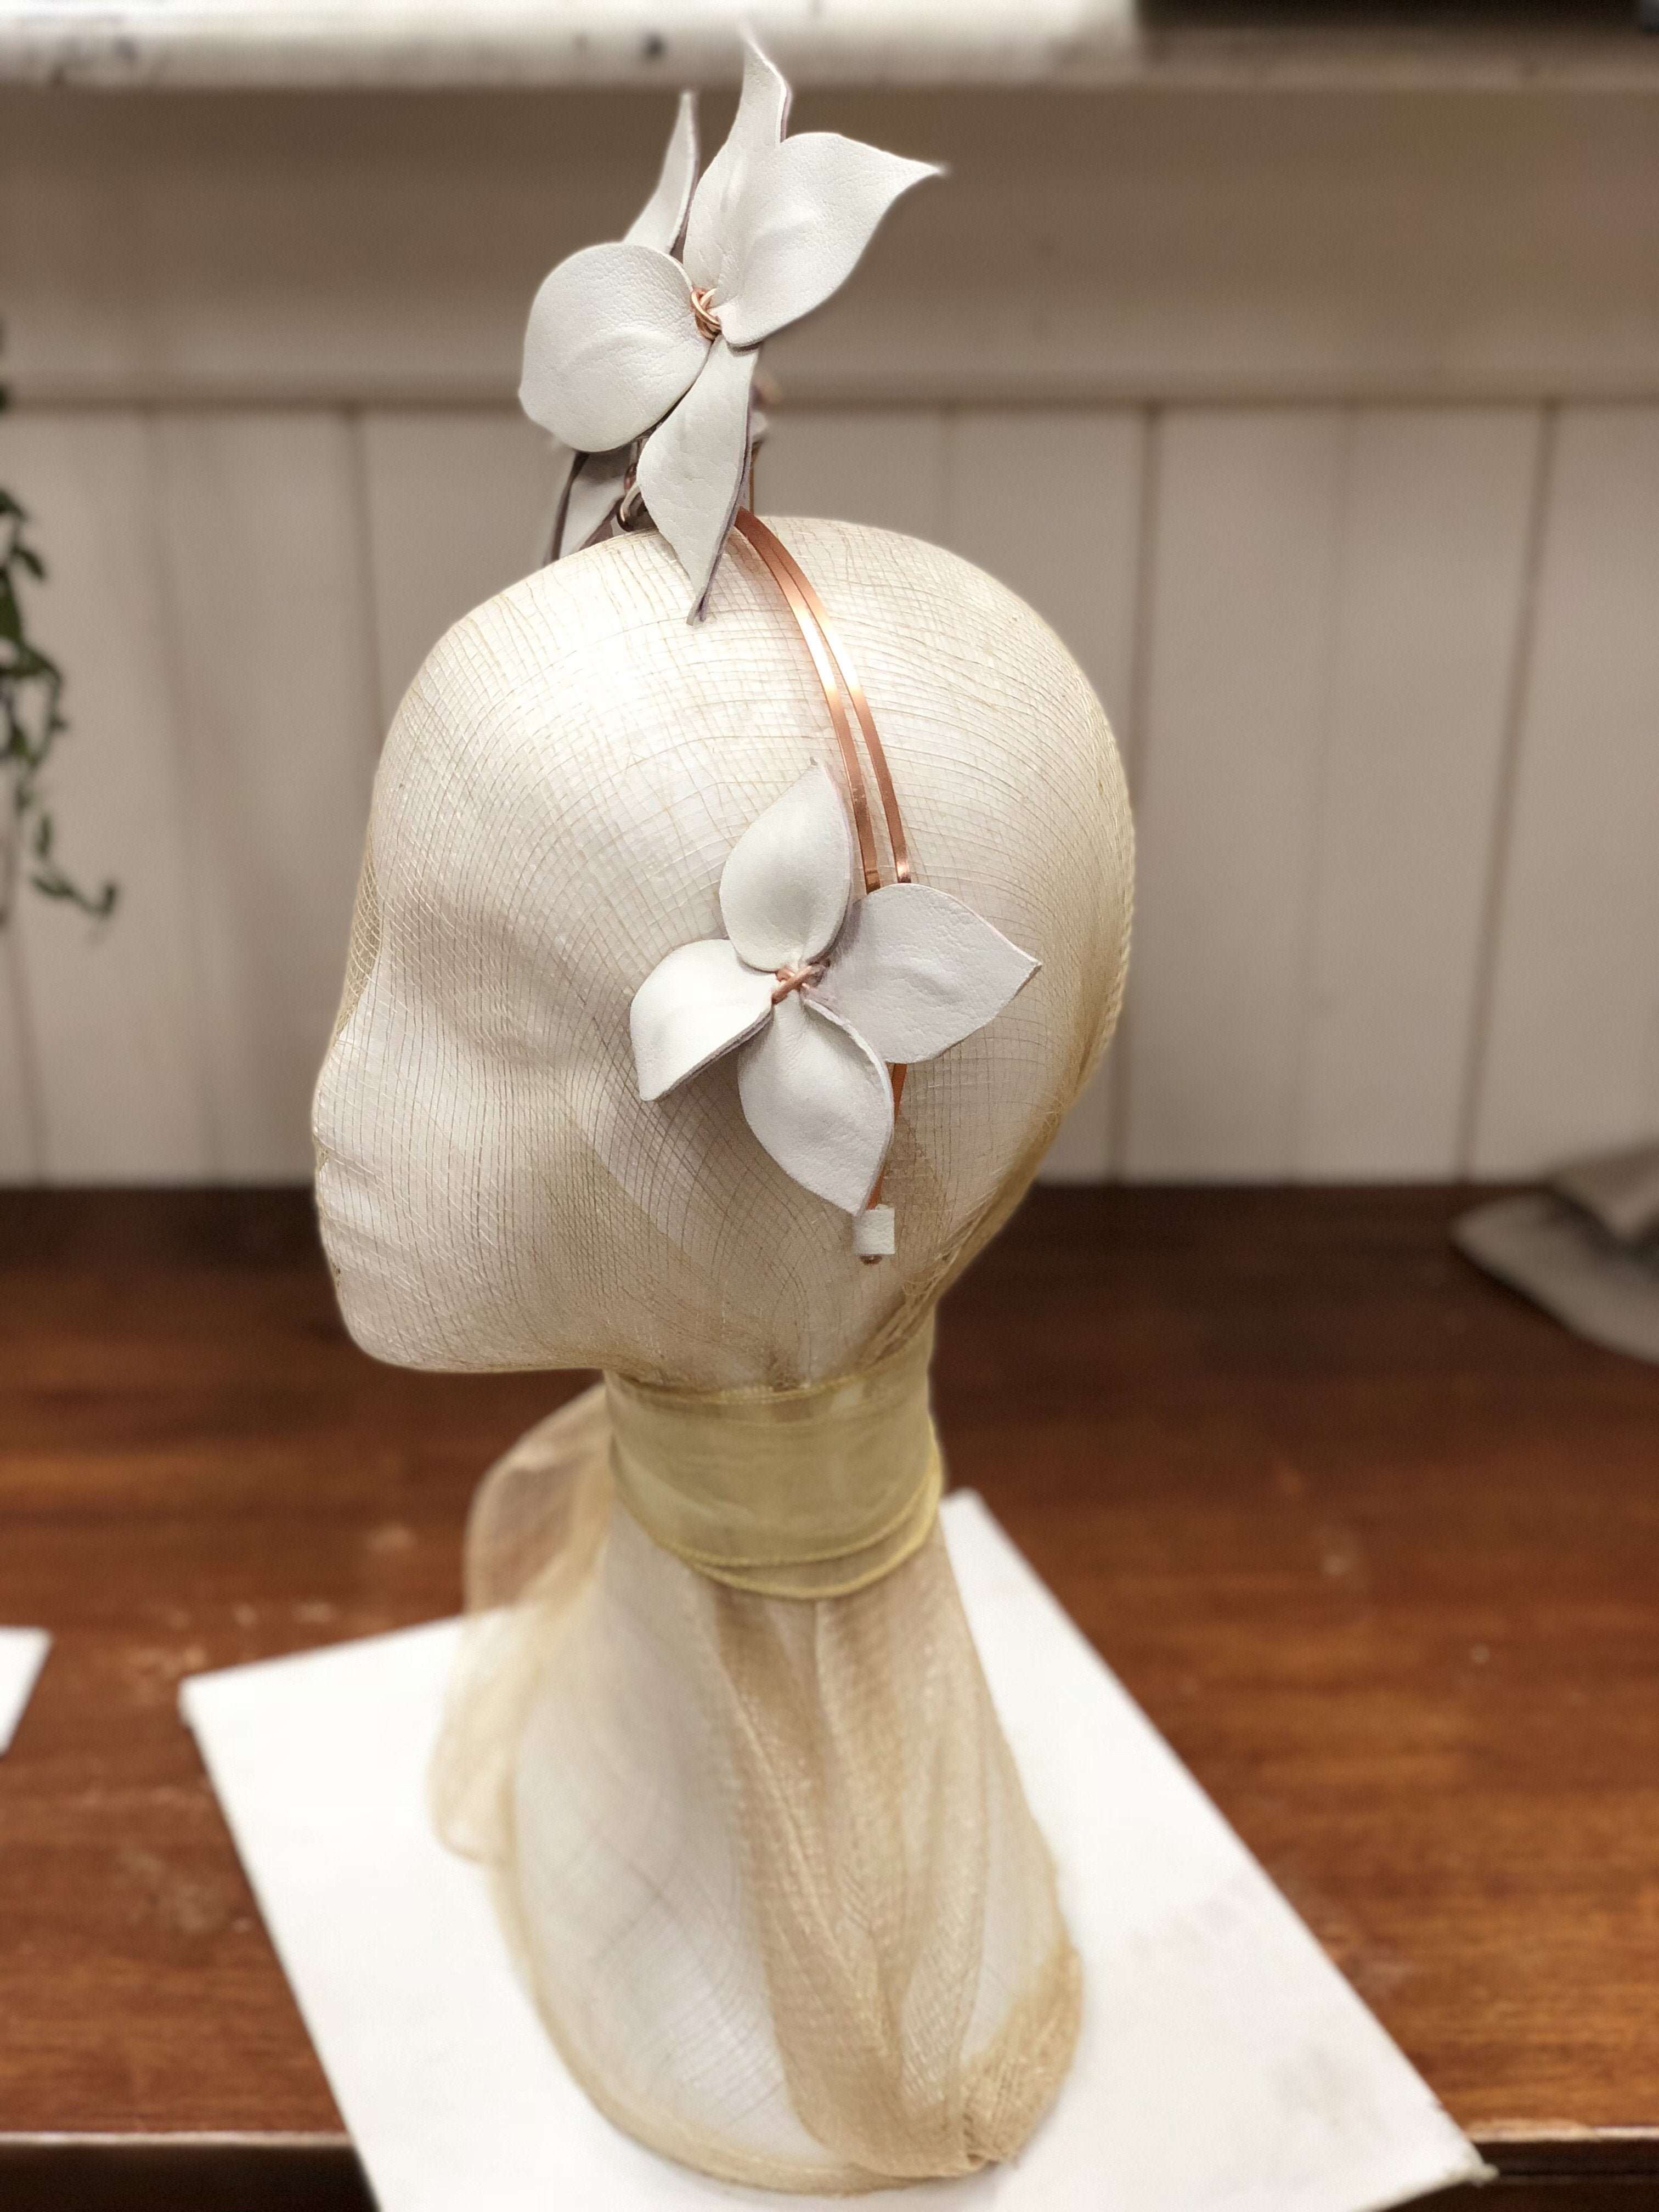 Fleur Cuir Star Flowers Asymmetrical Leather Headband in White & Violet Pink-Lookbook Boutique